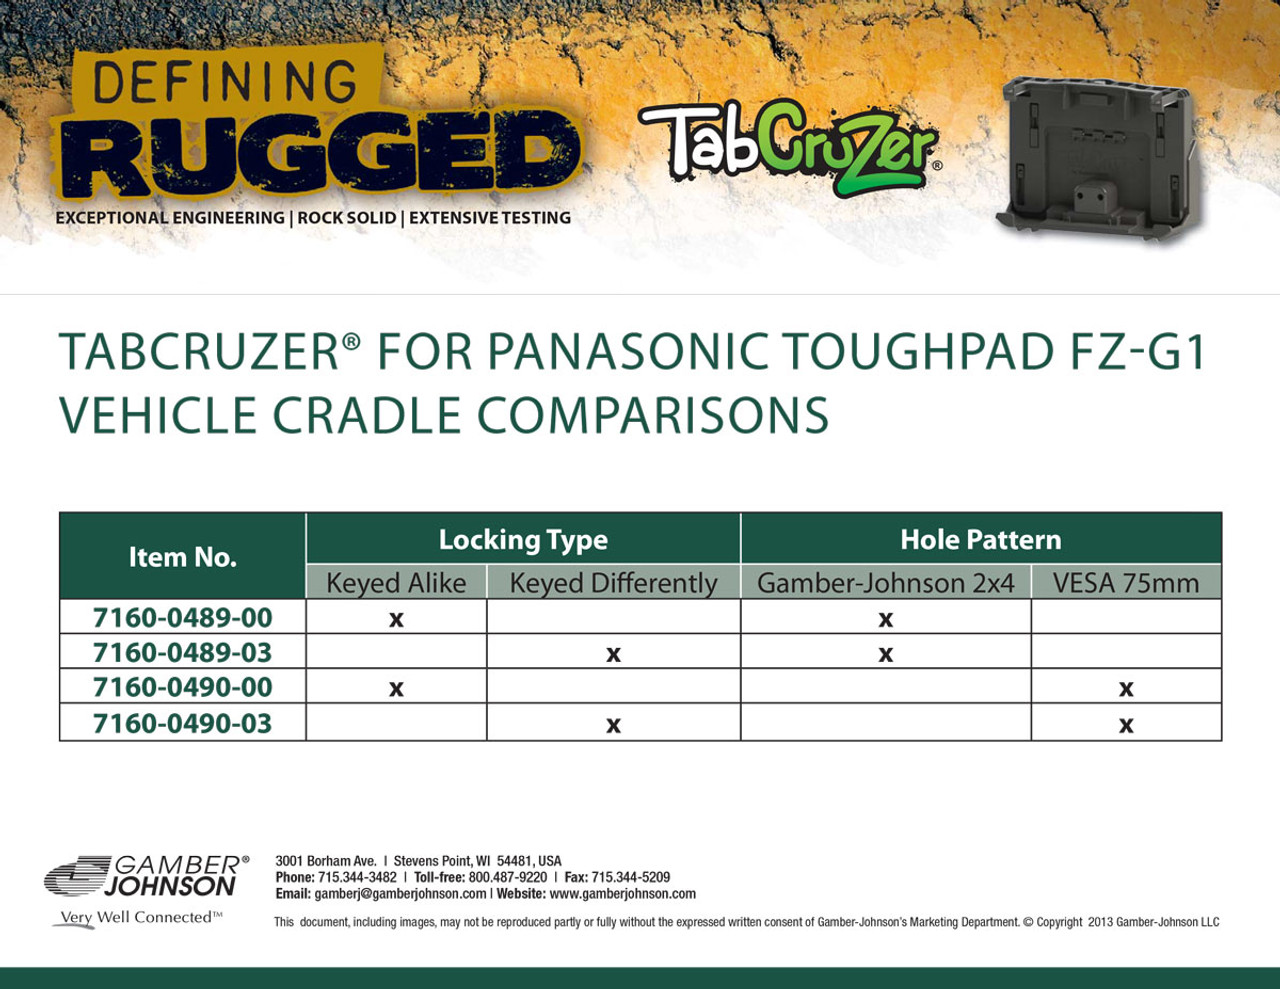 TabCruzer® Panasonic Toughpad FZ-G1 Vehicle Cradle by Gamber-Johnson